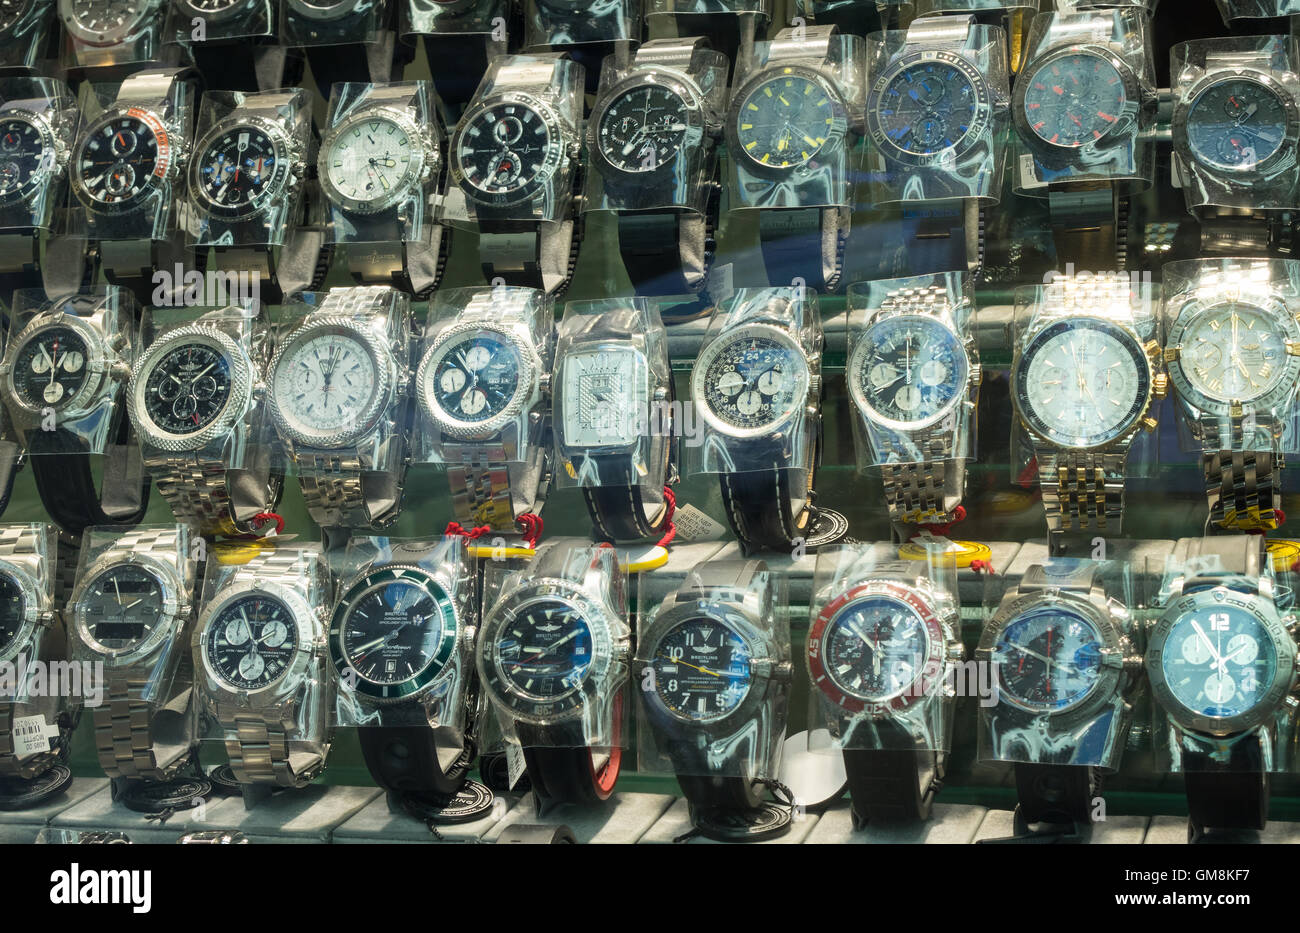 Men's wrist watches on display in the window of a shop on 47th Street in New York City - Stock Image